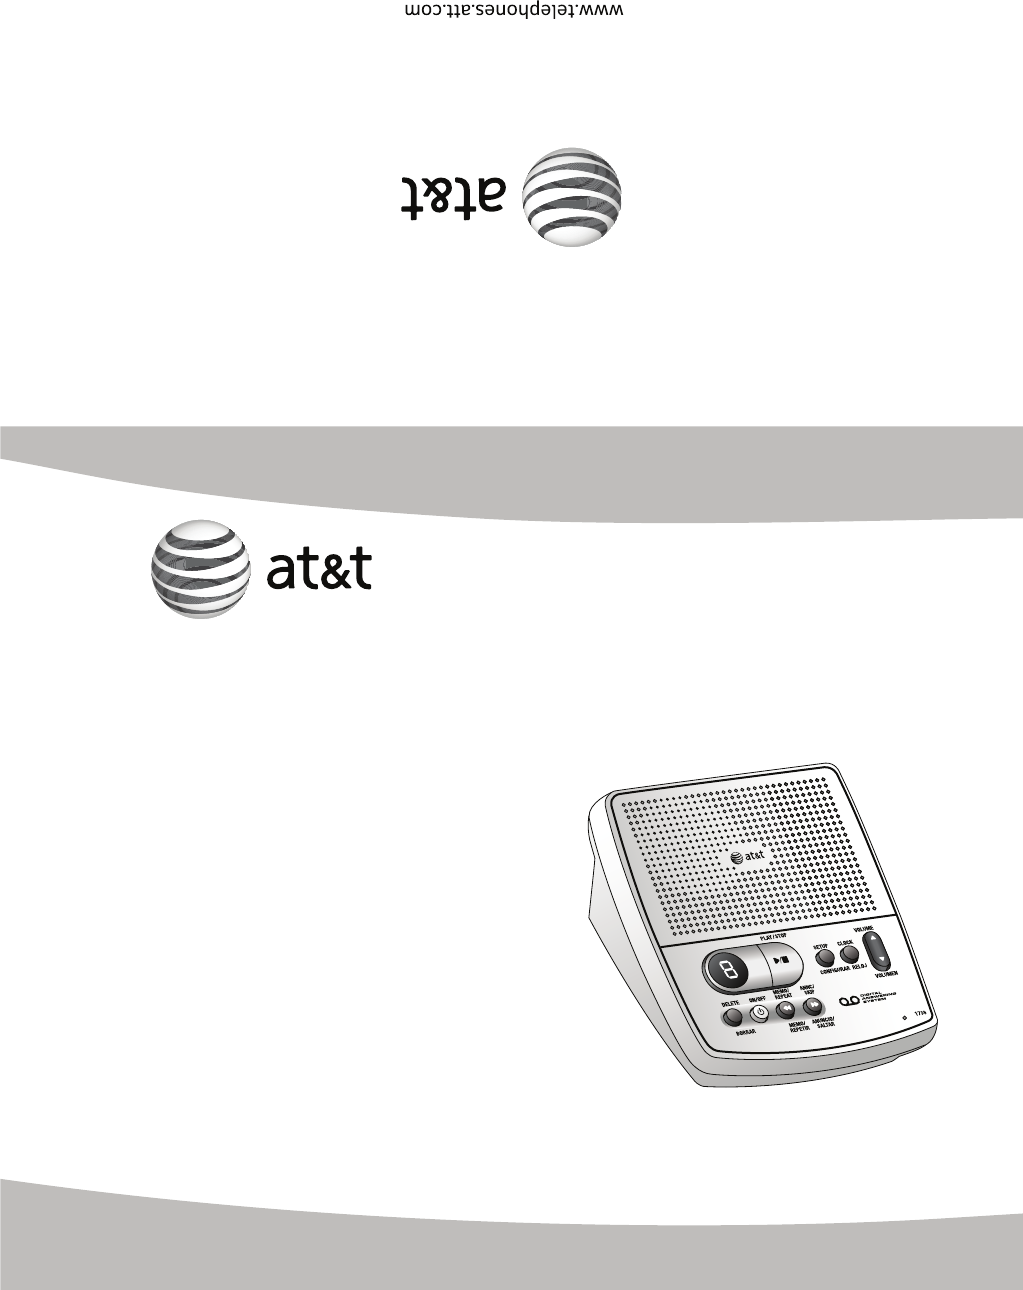 Att Answering Machine 1739 User Guide Manualsonline